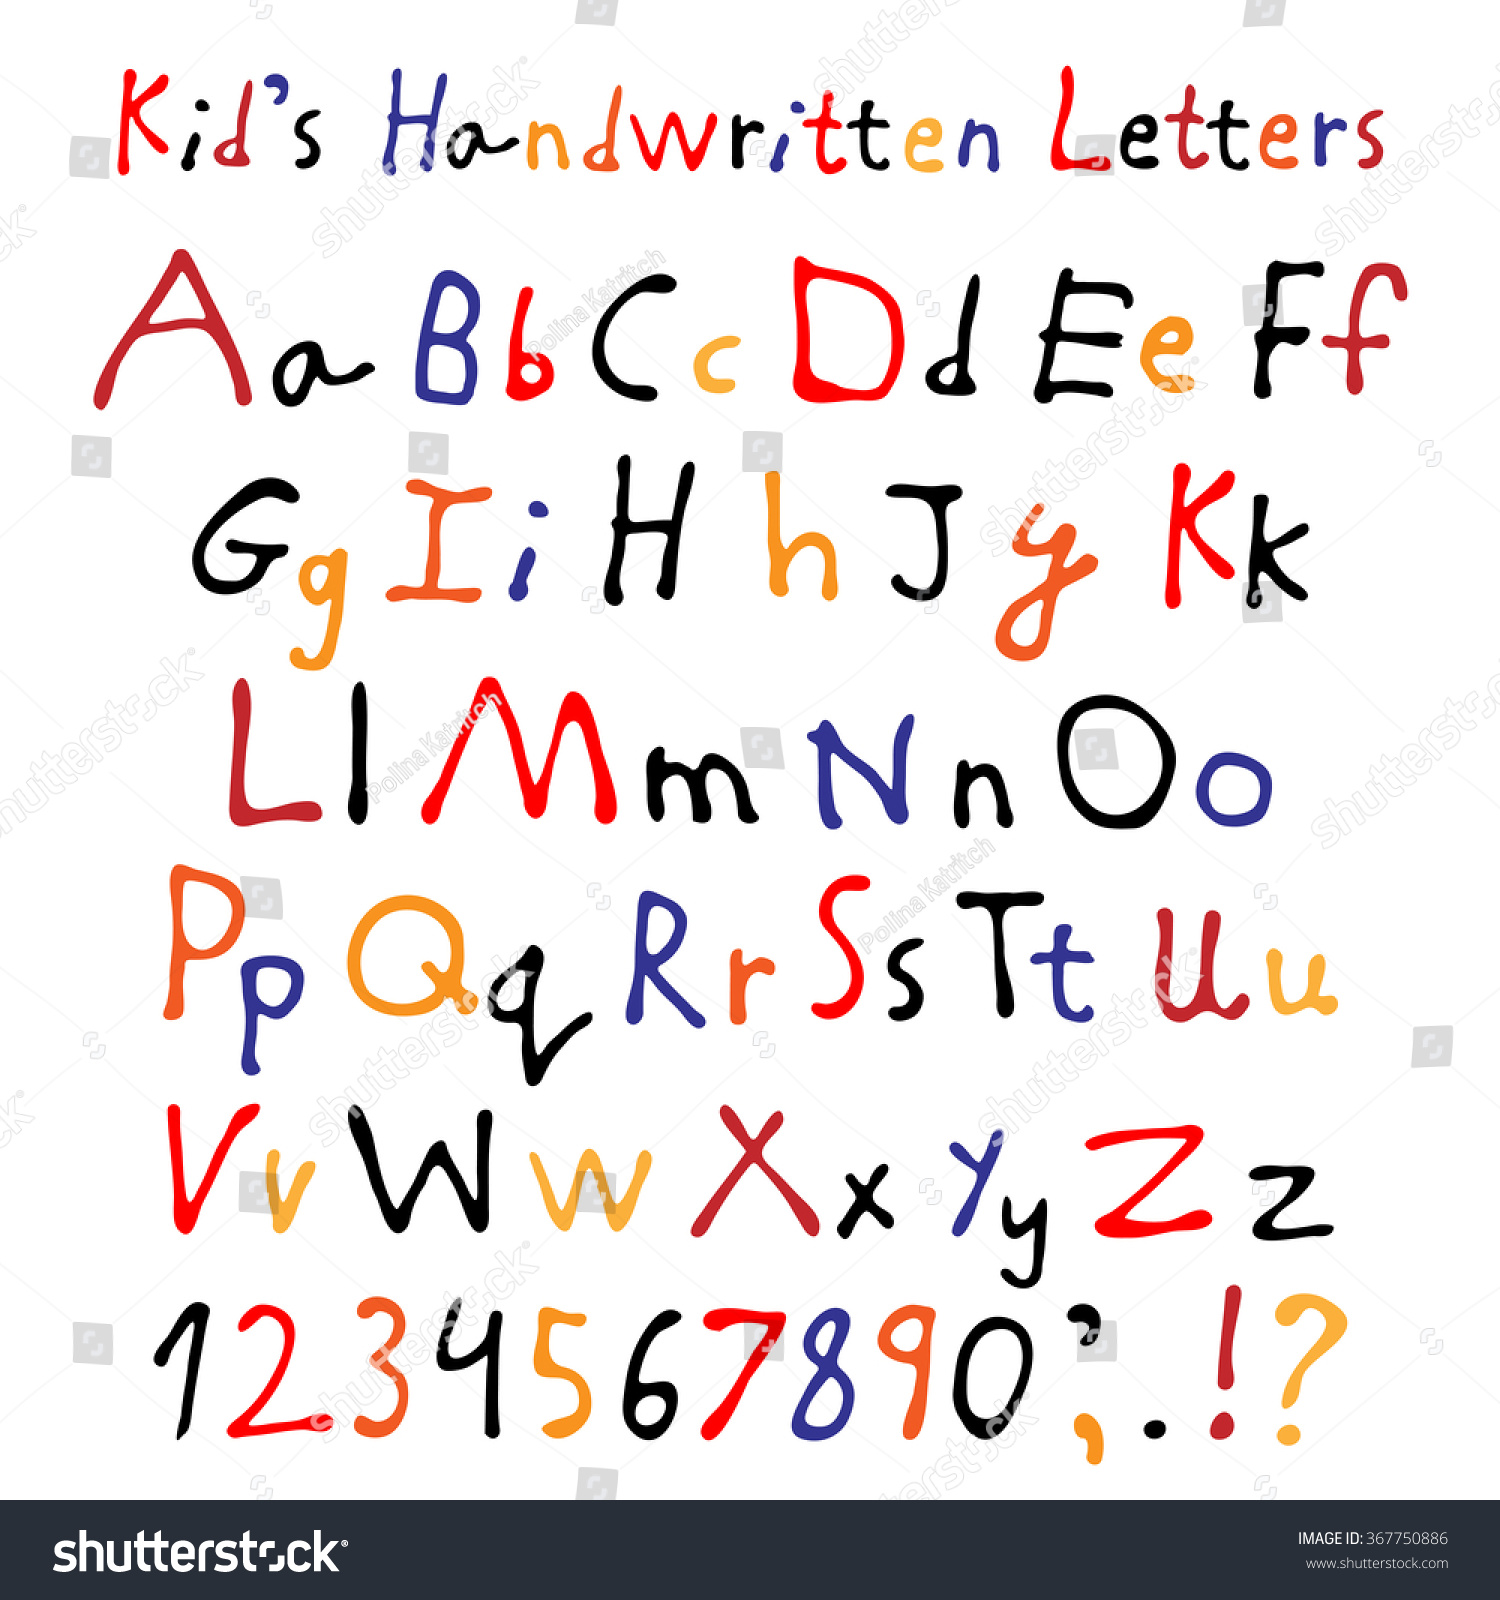 Worksheets Script Alphabet For Kids kids handwritten letters full alphabet and numbers childrens save to a lightbox